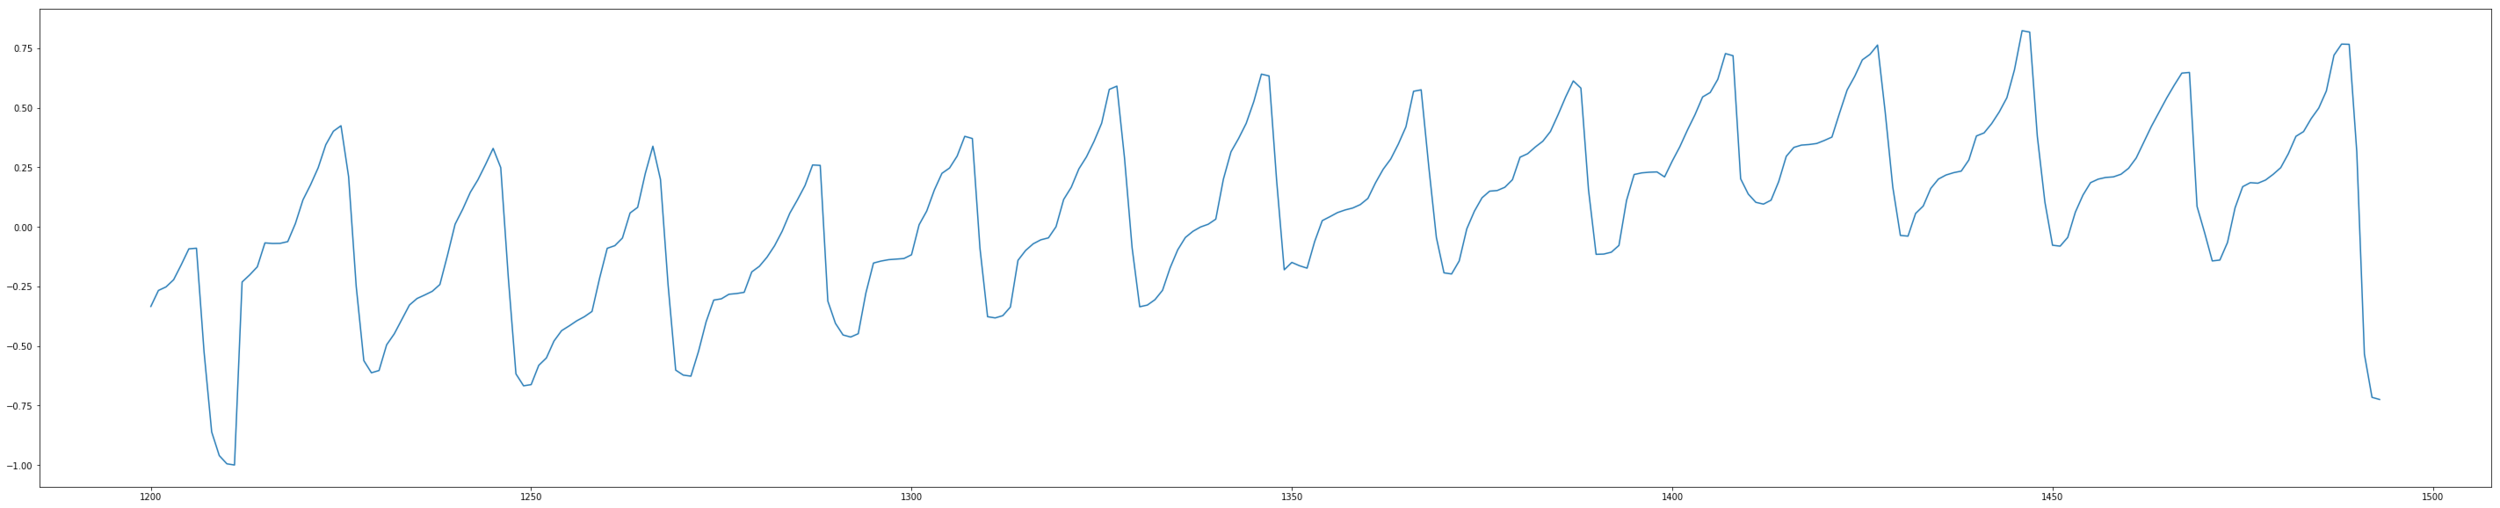 This is the kind of signal you can get from an optical sensor like the camera. Notice the different waveforms that need to be filtered and void of artefacts to produce an accurate enough signal to extract heart-rate-variability.